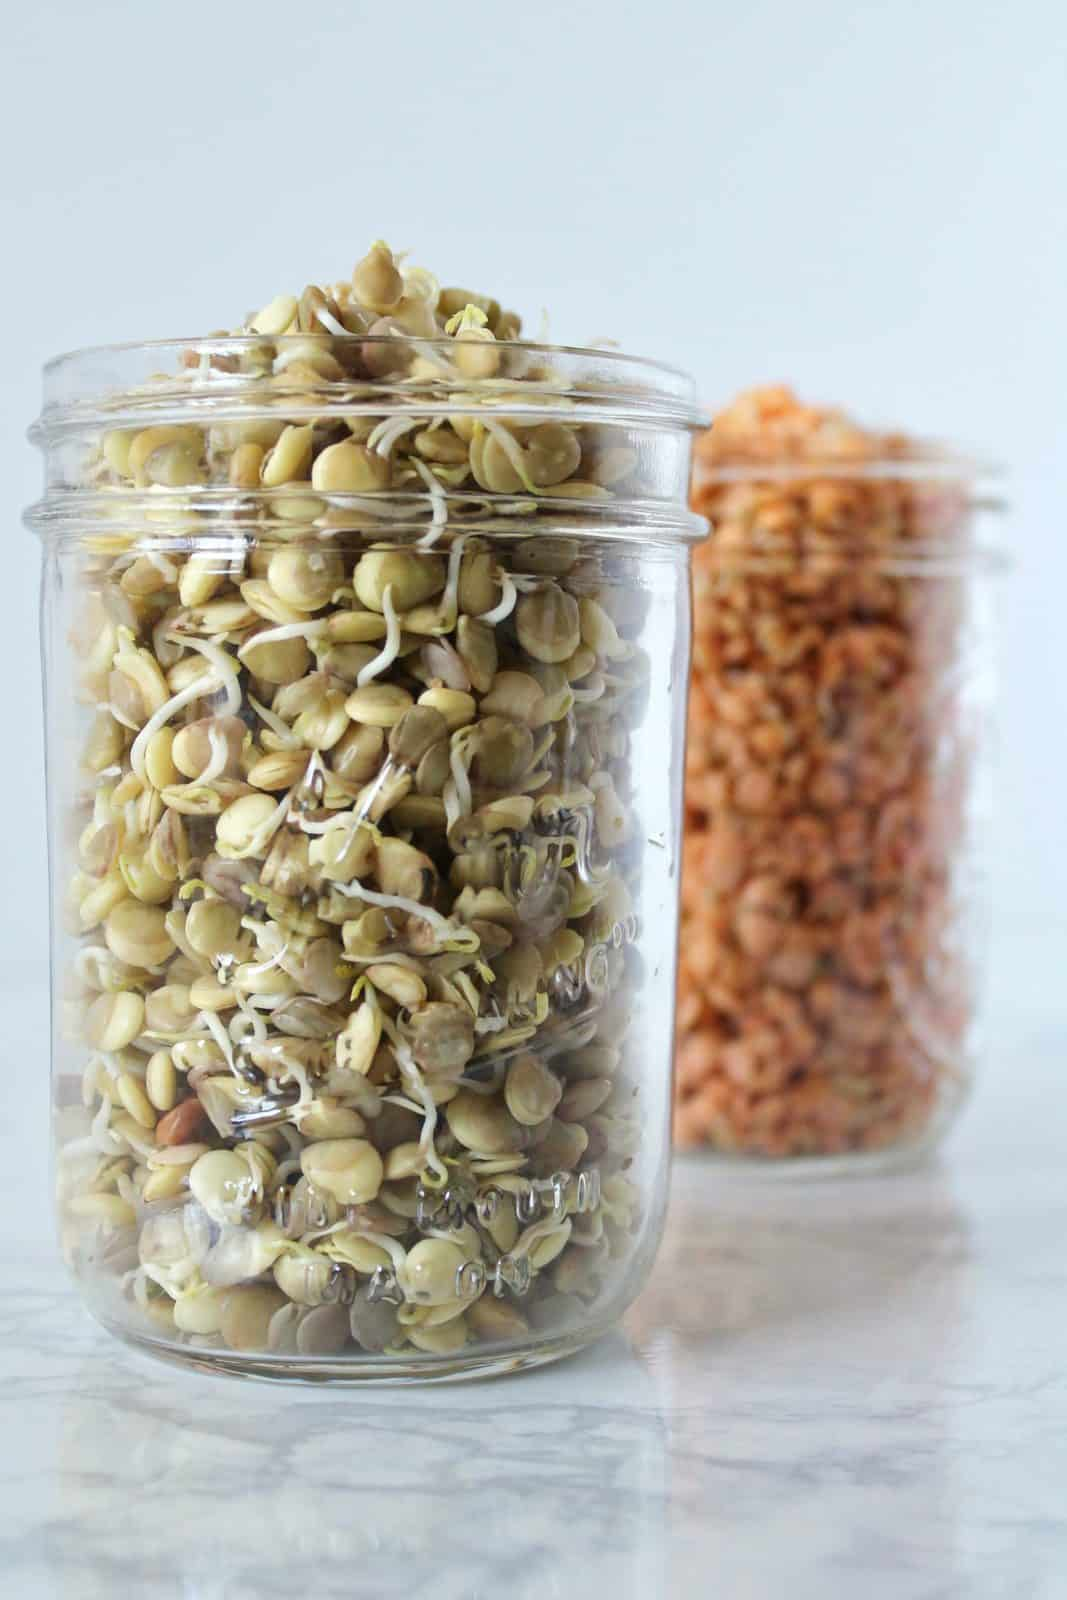 Two mason jars, one filled with brown lentil sprouts, one filled with red lentil sprouts on a white marble surface